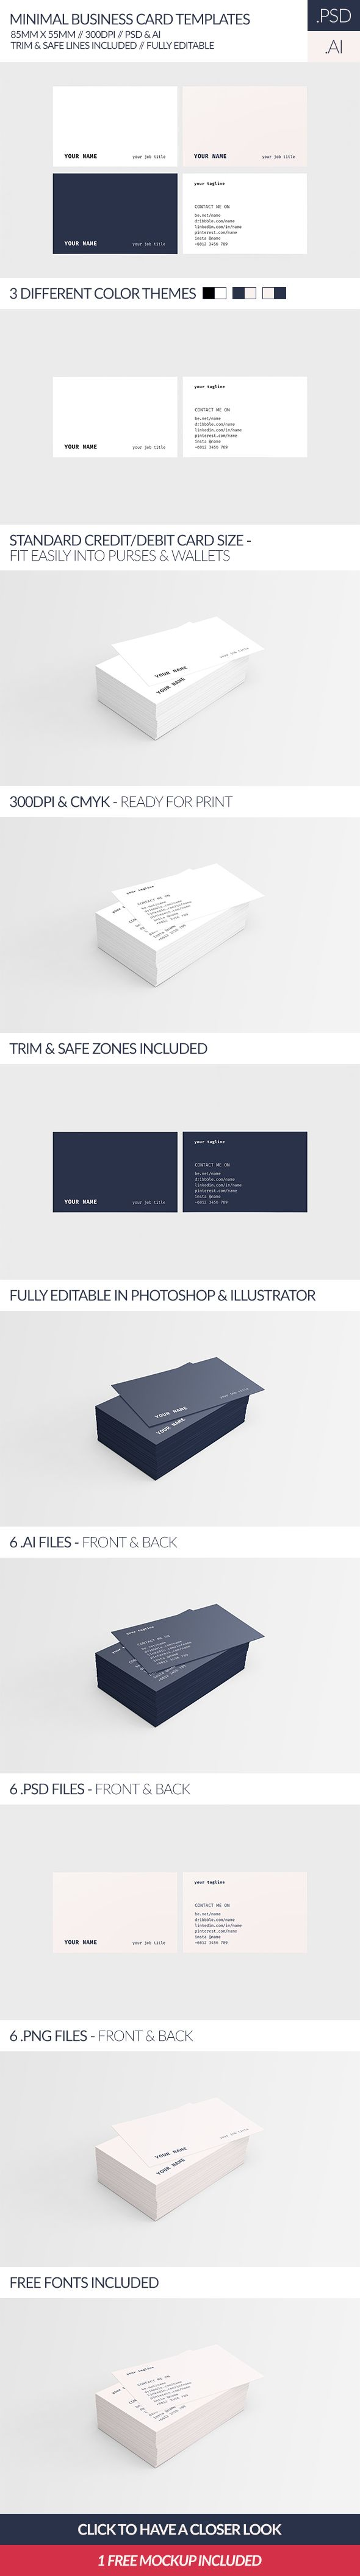 100 blank business card template illustrator